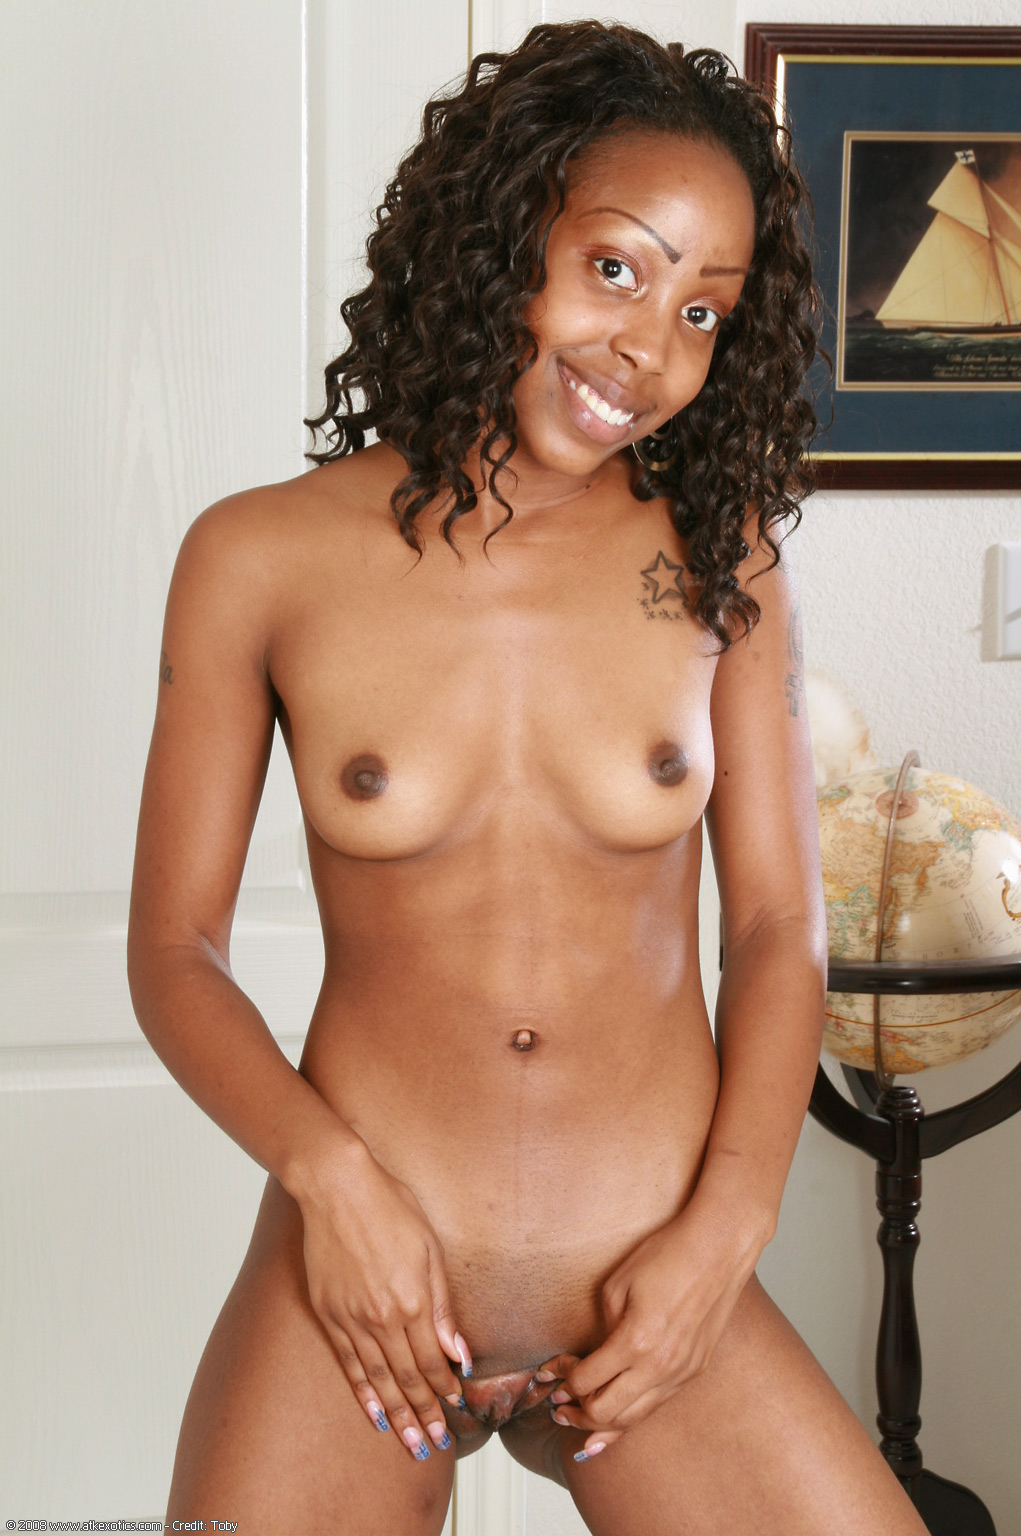 young girl from somalia porn